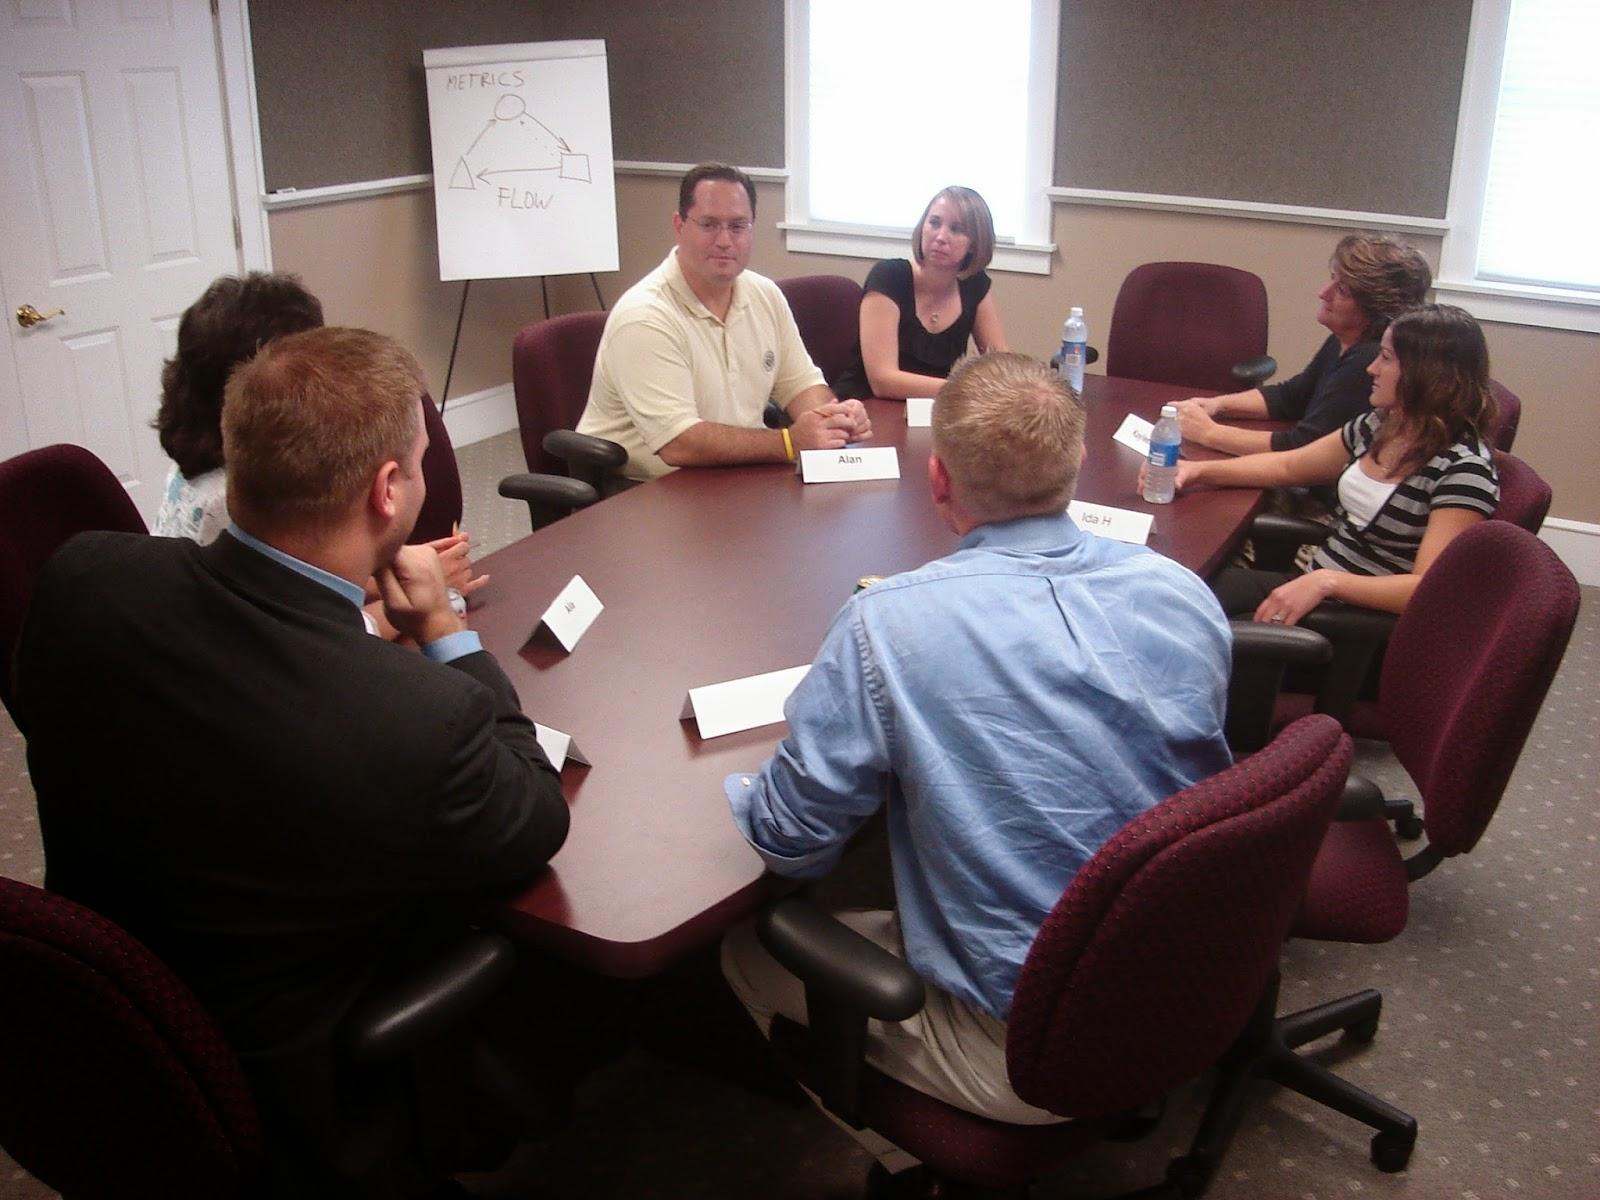 Focus Group Research - An Effective Marketing Strategy